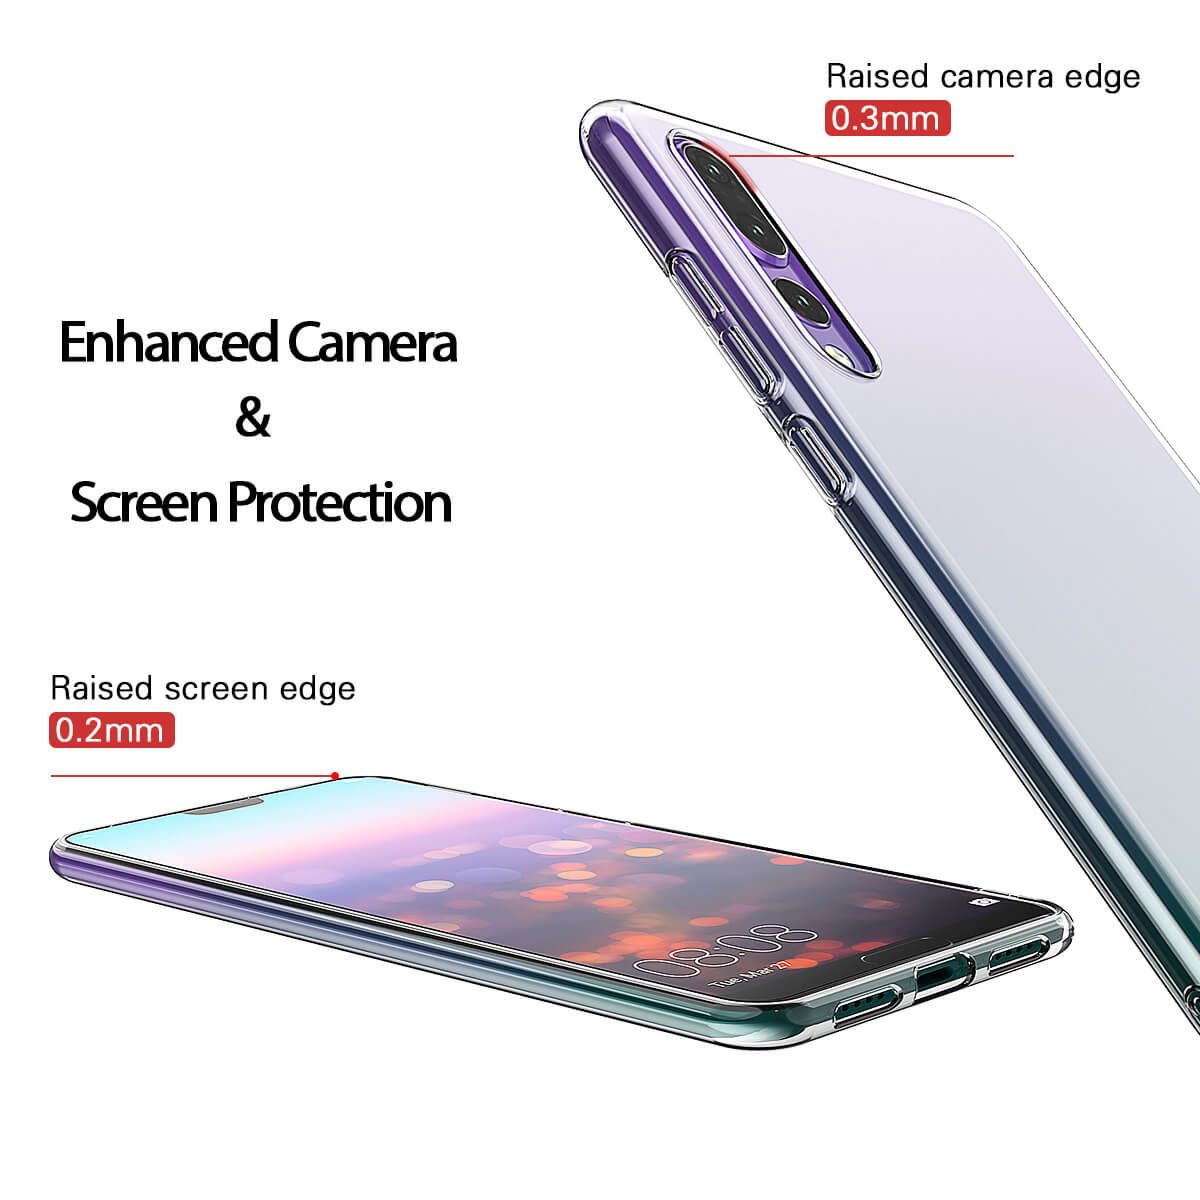 Shockproof-Silicone-Protective-Clear-Gel-Cover-Case-For-Huawei-P20-Pro-P-Smart thumbnail 15